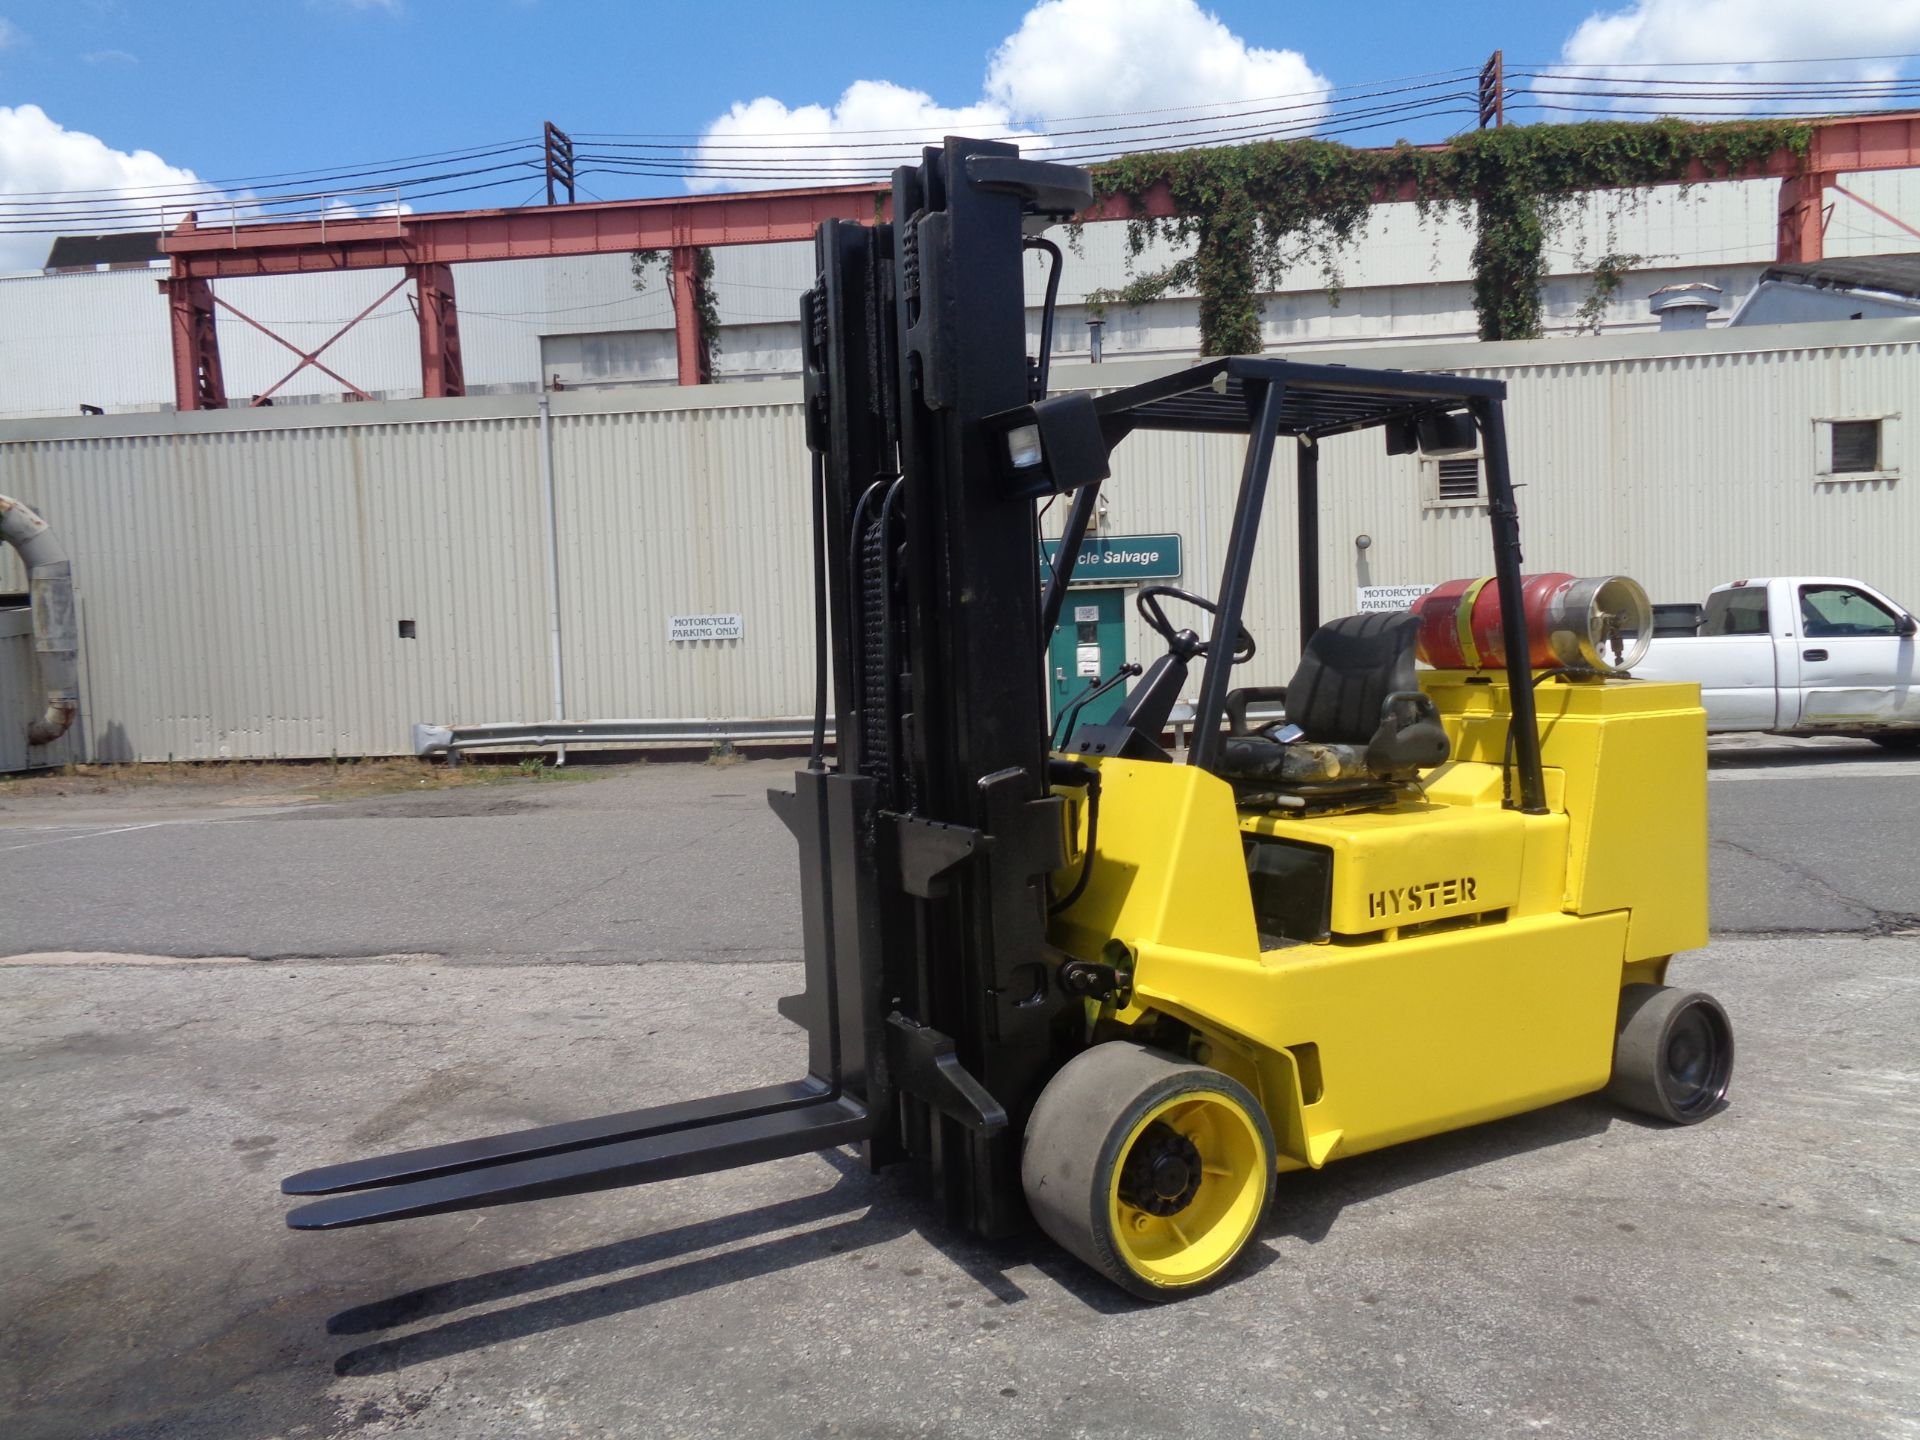 Hyster S120XL 12,000lb Forklift - Image 6 of 14